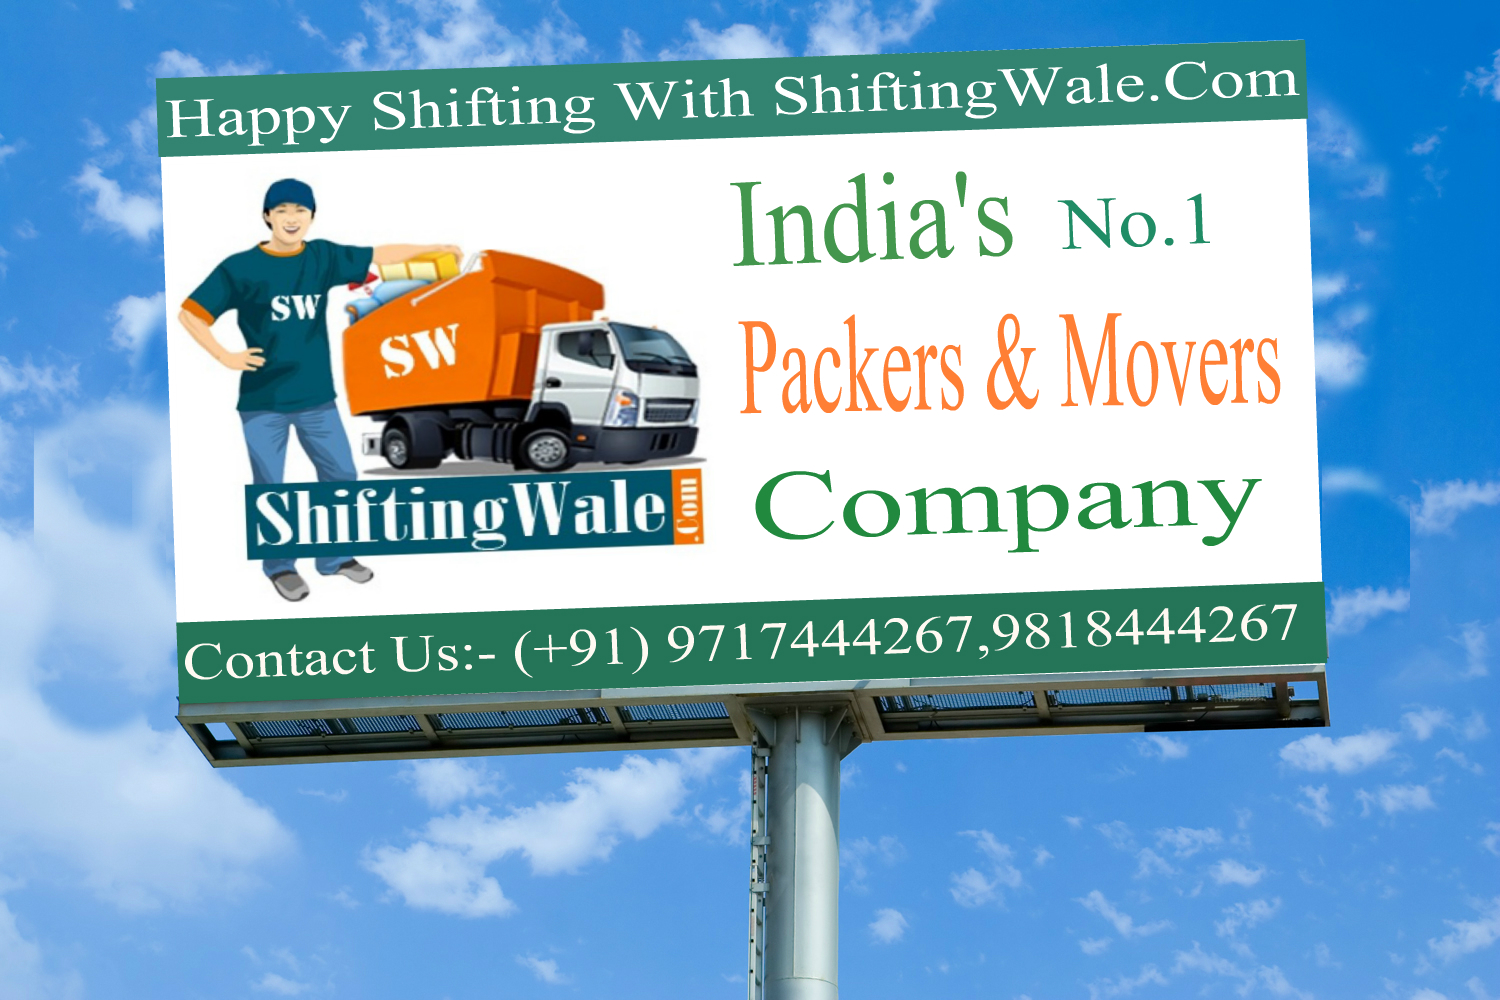 We Are the Best Movers and Packers in Roorkee Haridwar Rishikesh Dehradun Saharanpur for Relocation Household Car Bike